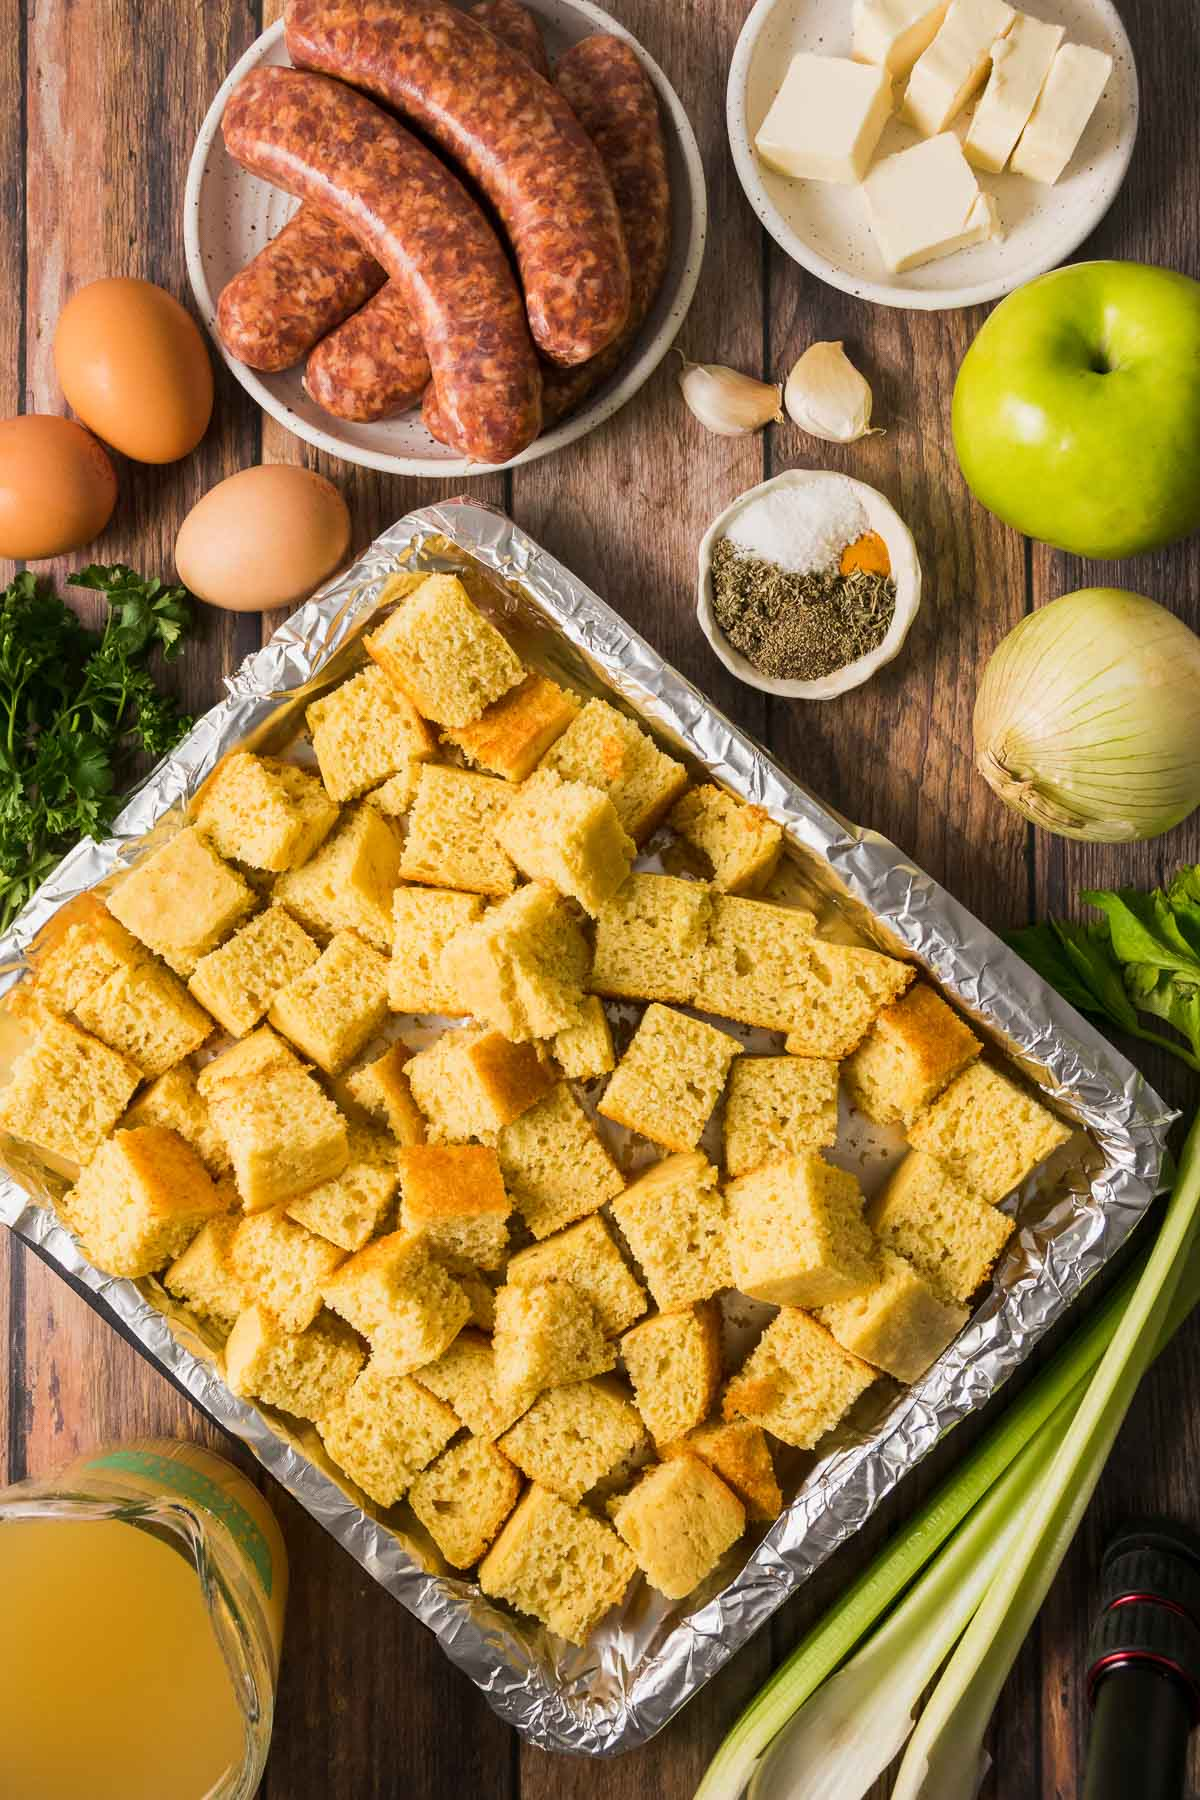 Ingredients for cornbread dressing- cornbread cubes, Italian sausage, eggs, a bowl of seasonings, garlic, butter, apple, onion, and chicken broth.